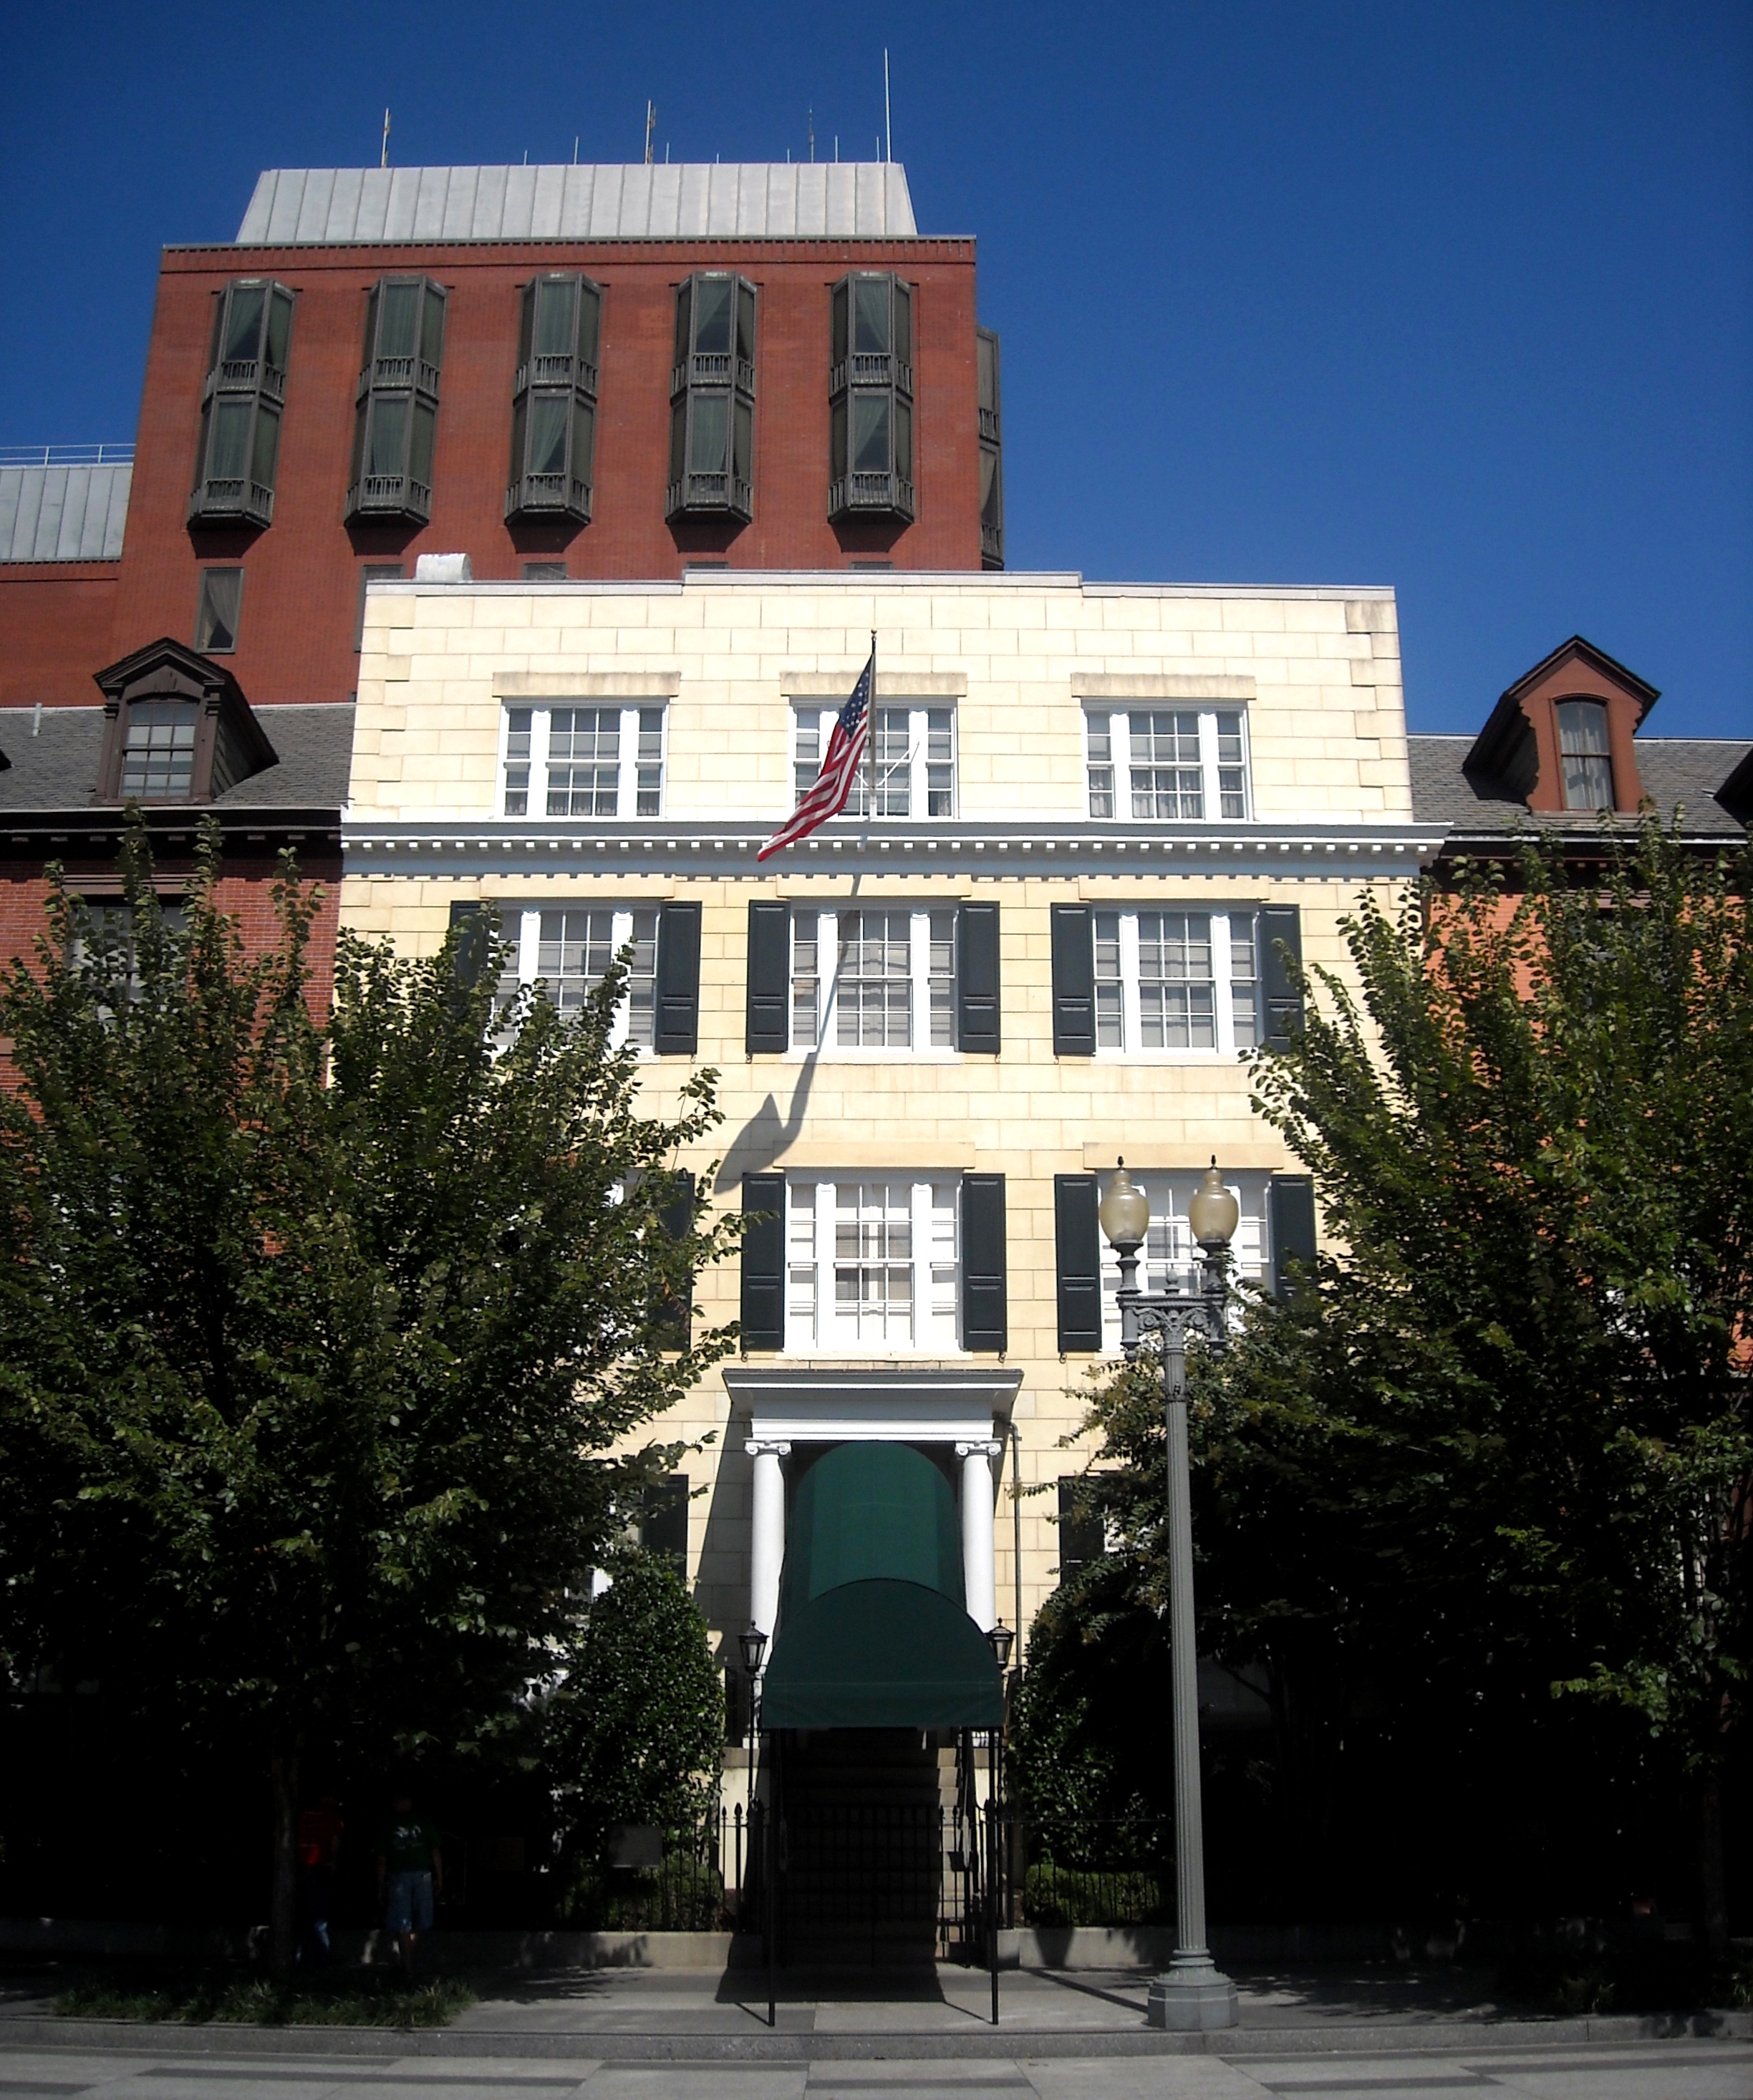 Blair House is known as the President's Guest House. It was purchased by the U.S. government in 1942 at the urging of President Franklin Roosevelt. Image by AgnosticPreachersKid on Wikimedia Commons (CC BY-SA 3.0)